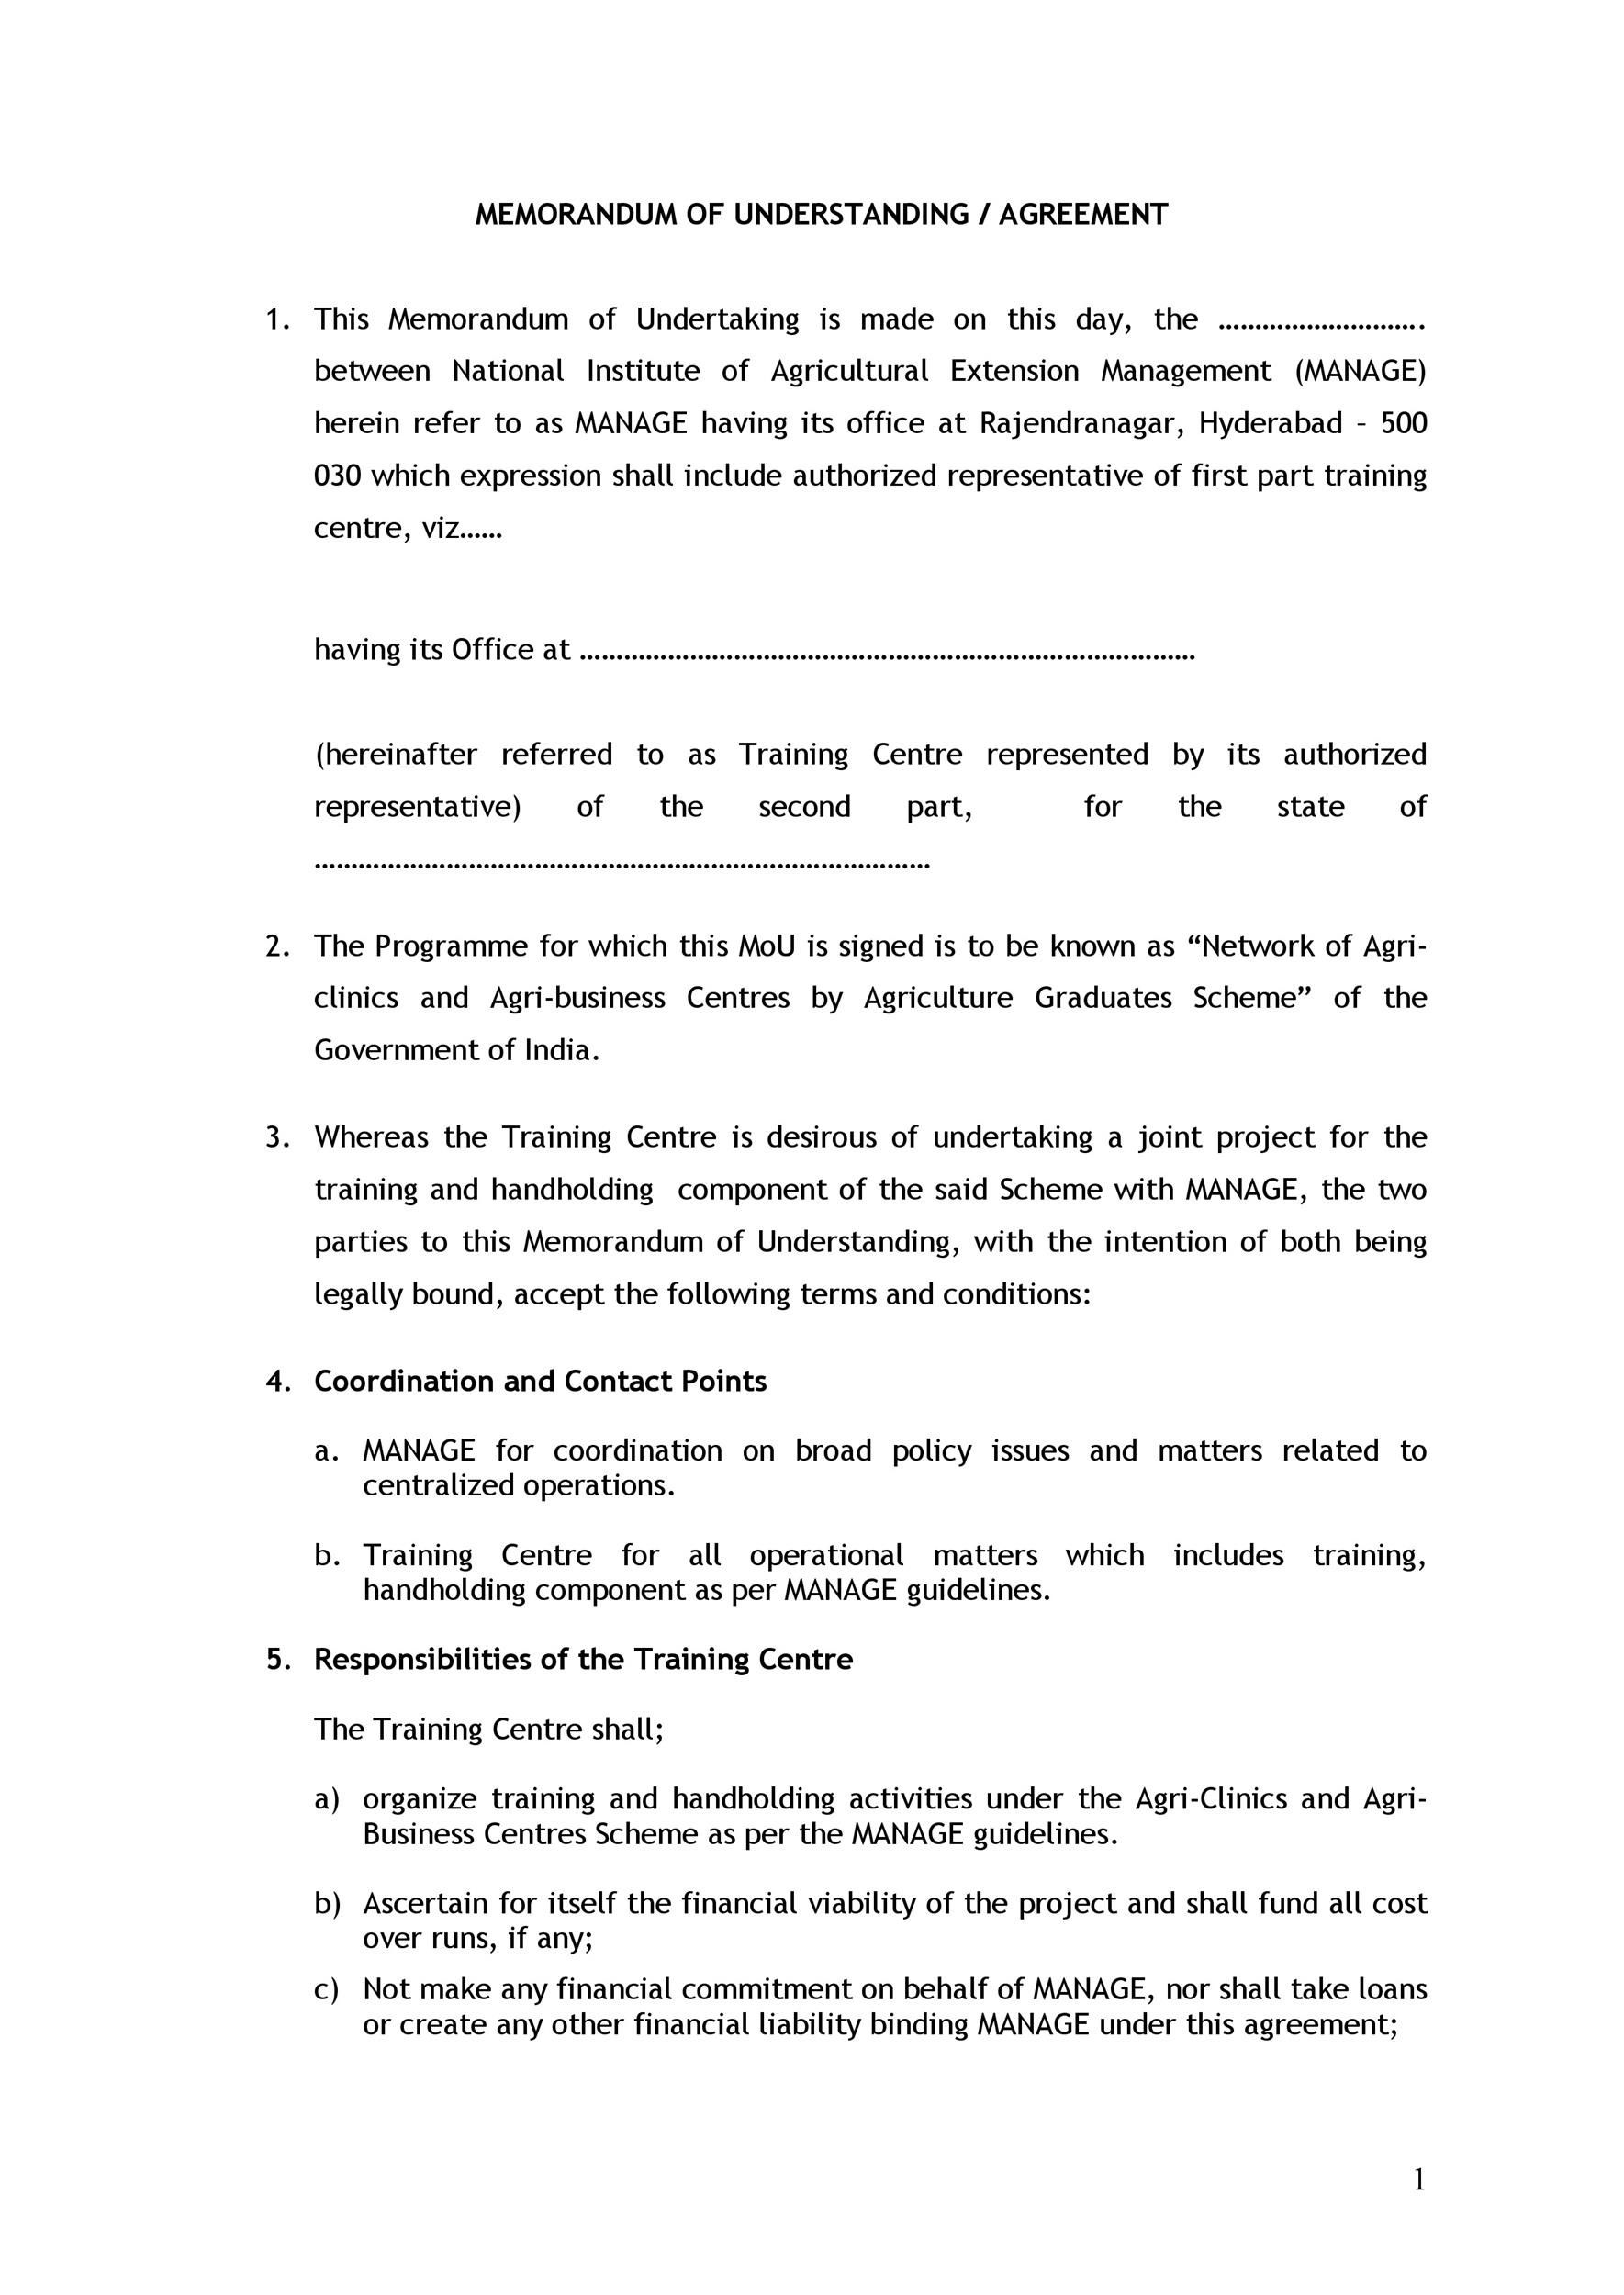 009 Outstanding Memorandum Of Agreement Template Highest Clarity  Templates Sample Tagalog South Africa Philippine DocFull